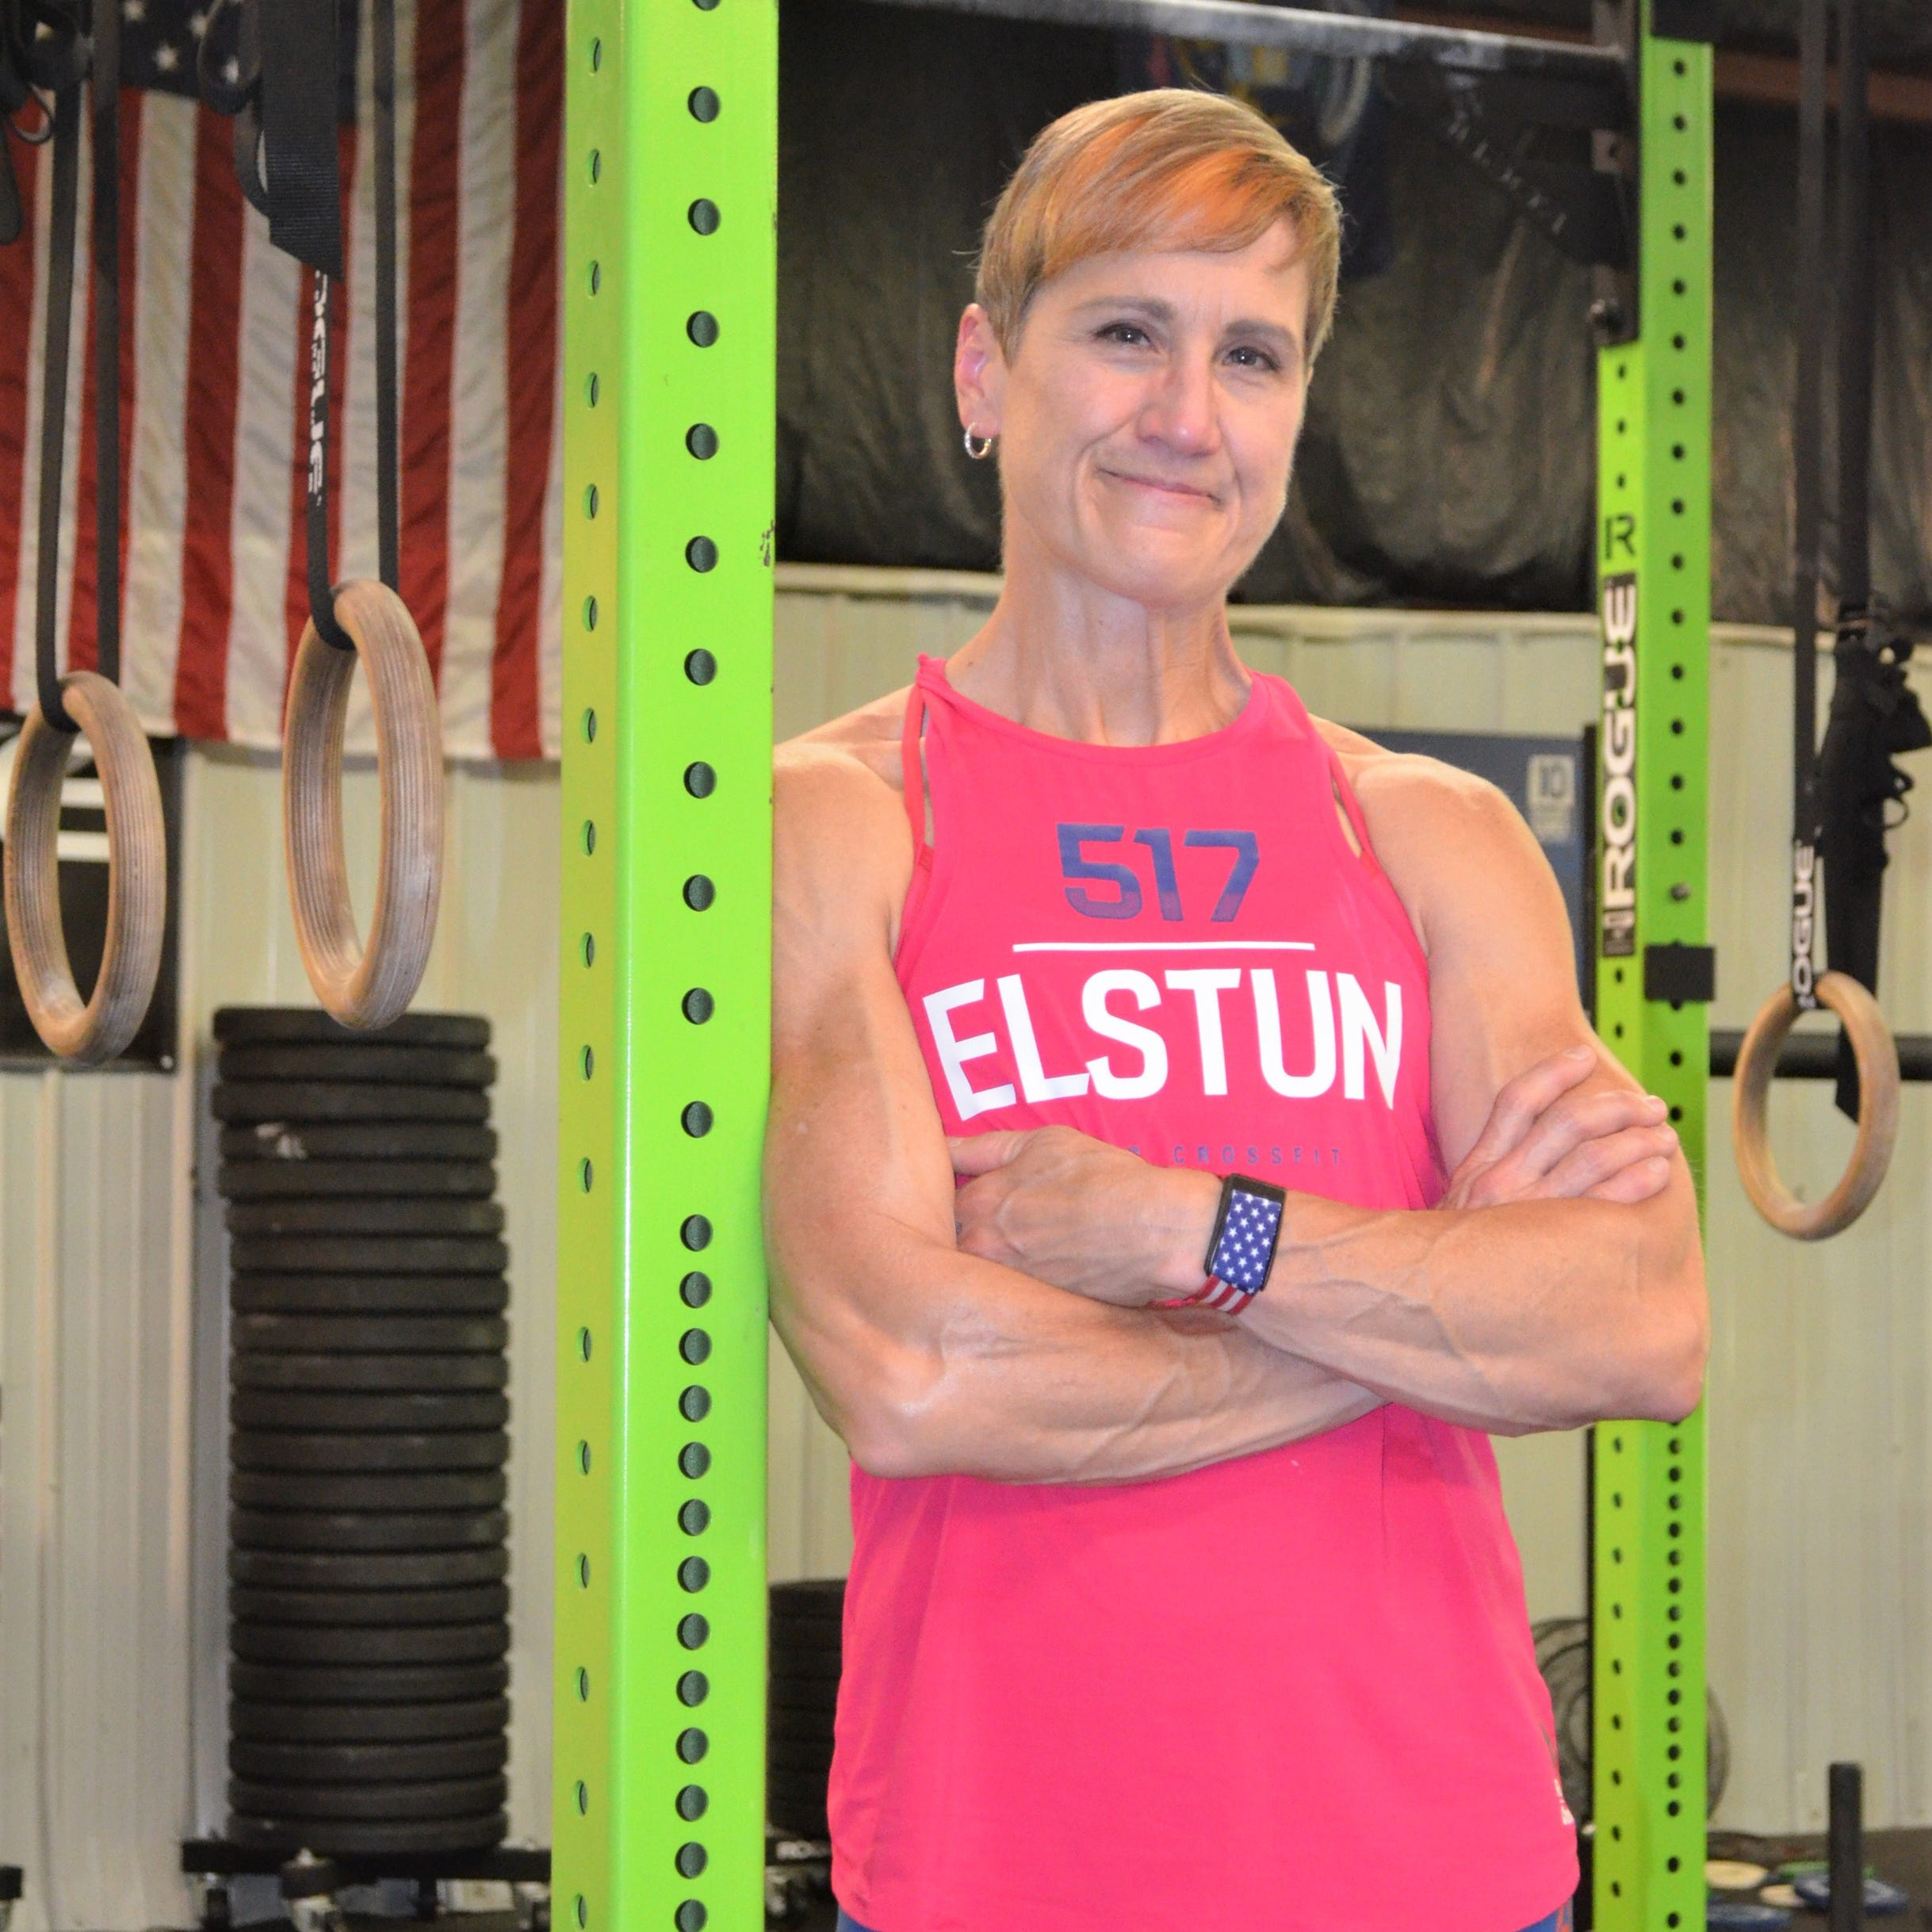 After battling cancer, local CrossFit athlete now one of fittest 54-year-olds in the world